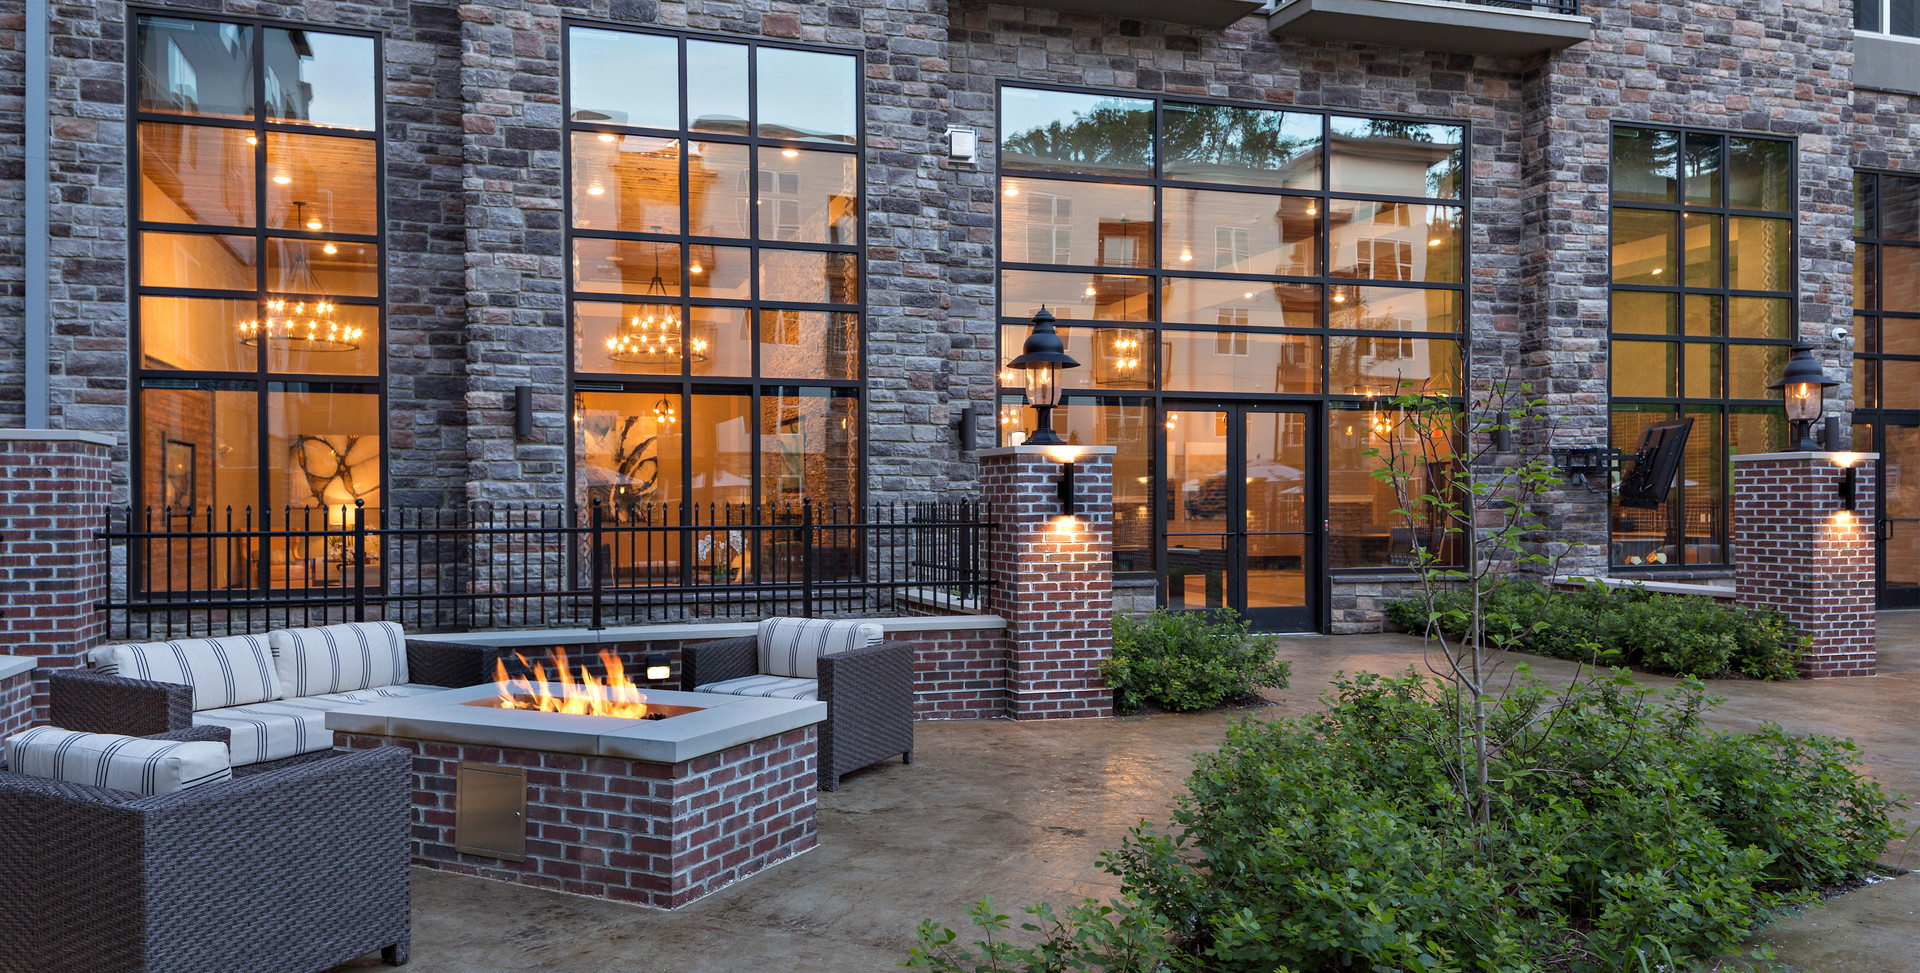 Outdoor Firepit Lit and Building.jpg